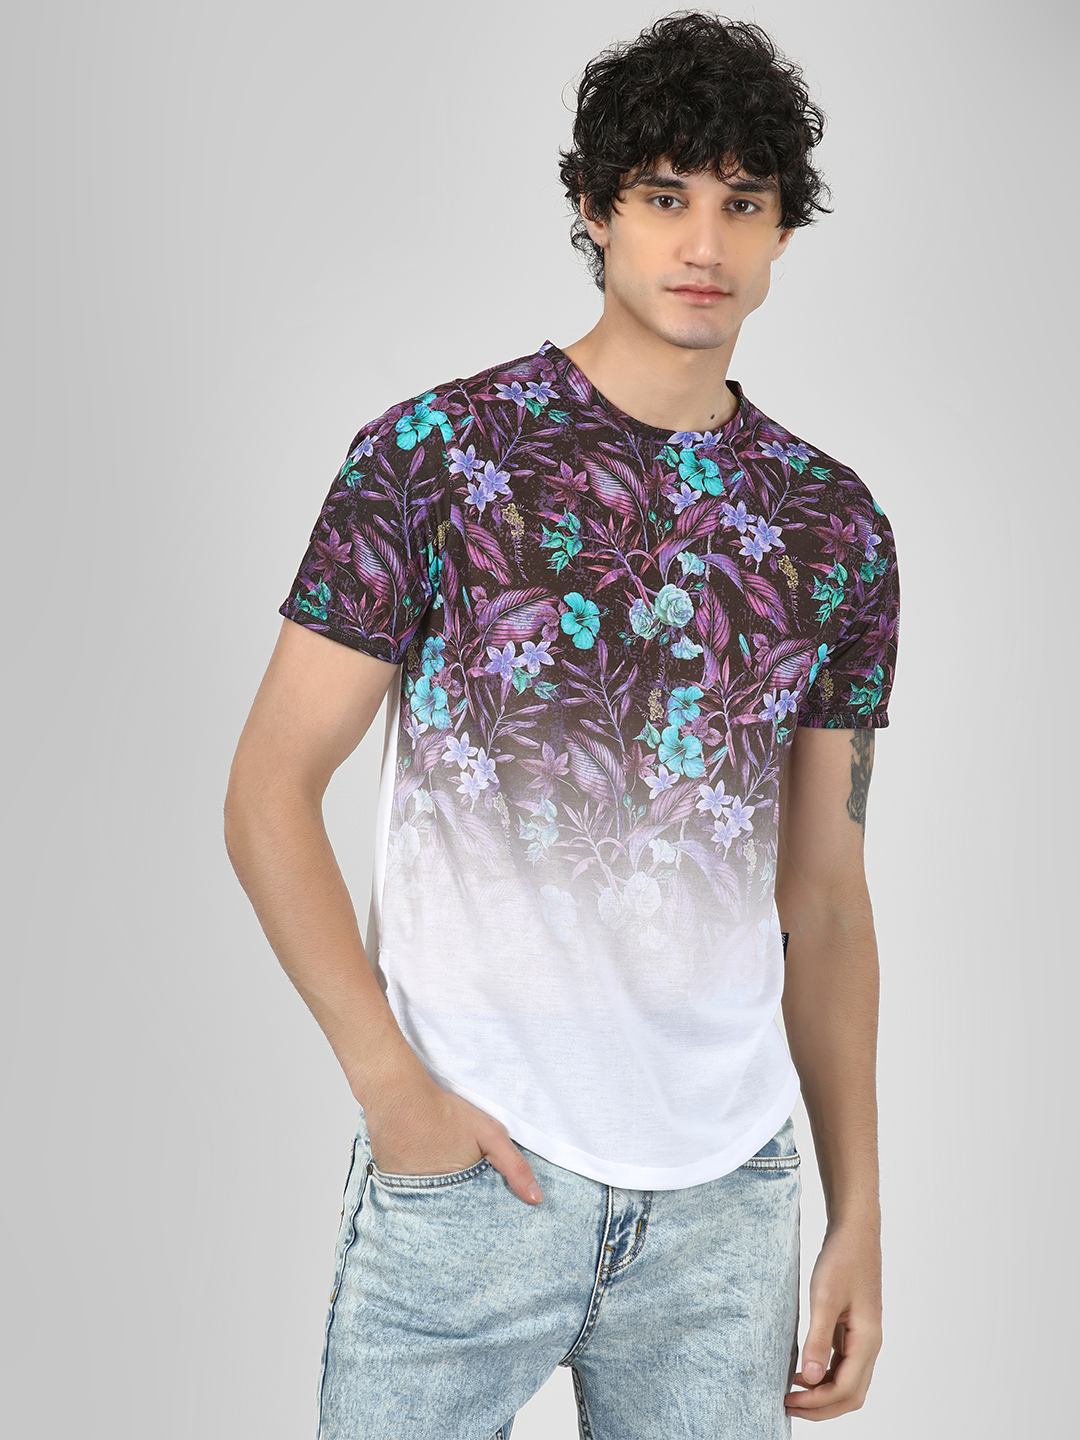 KOOVS Multi Floral Sublimation Print T-Shirt 1